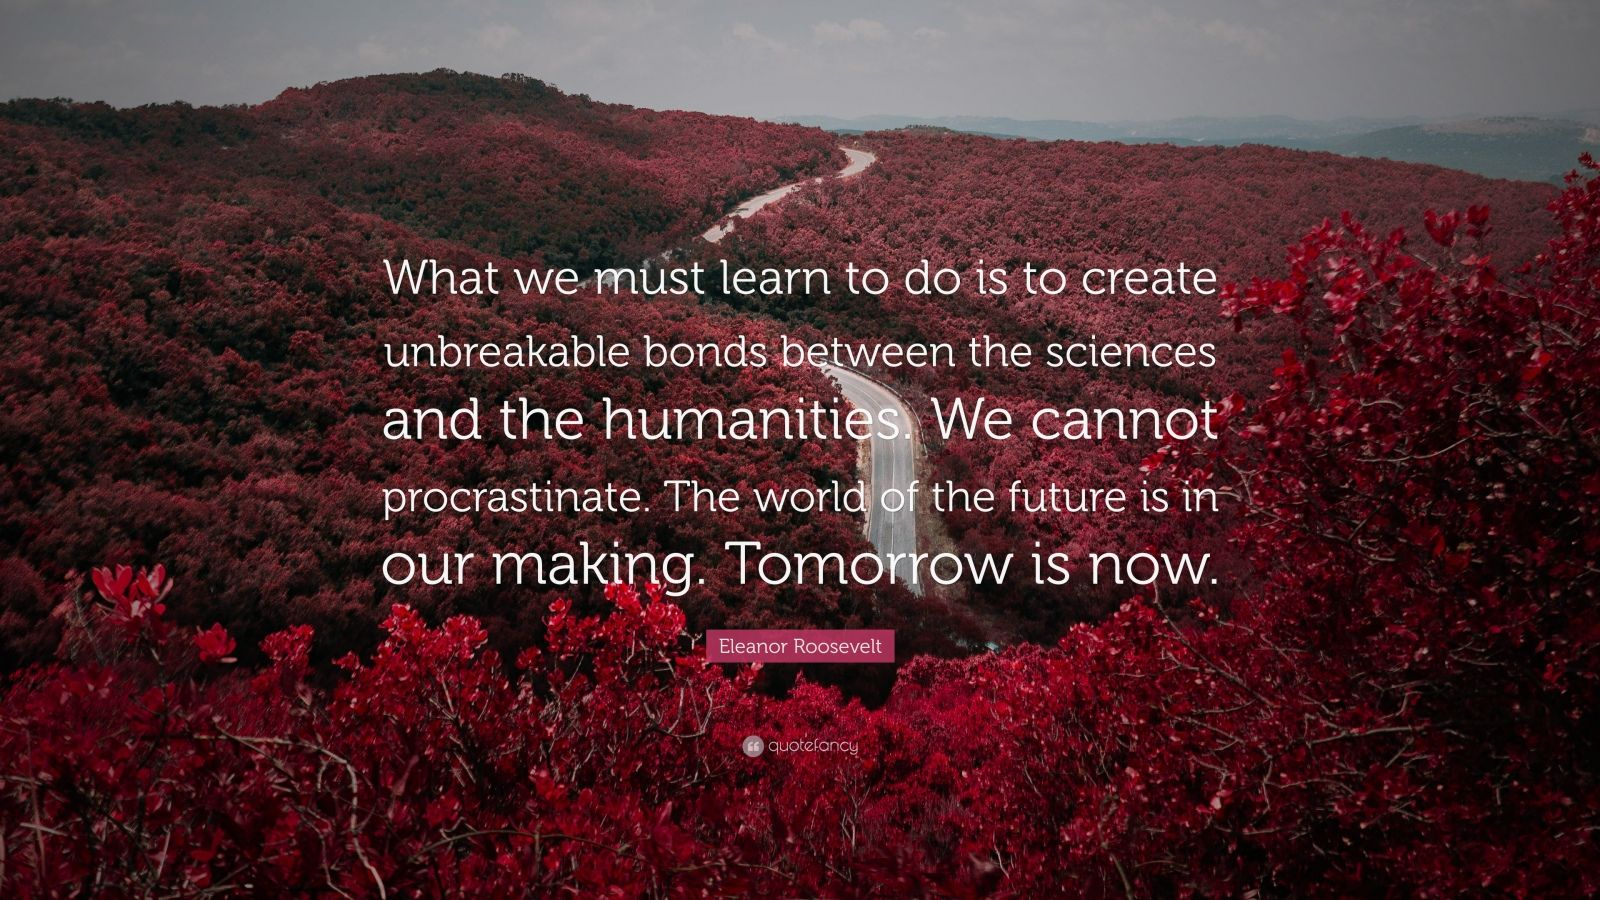 """Eleanor Roosevelt Quote: """"What we must learn to do is to create unbreakable bonds between the sciences and the humanities. We cannot procrastinate. The world of the future is in our making. Tomorrow is now."""""""